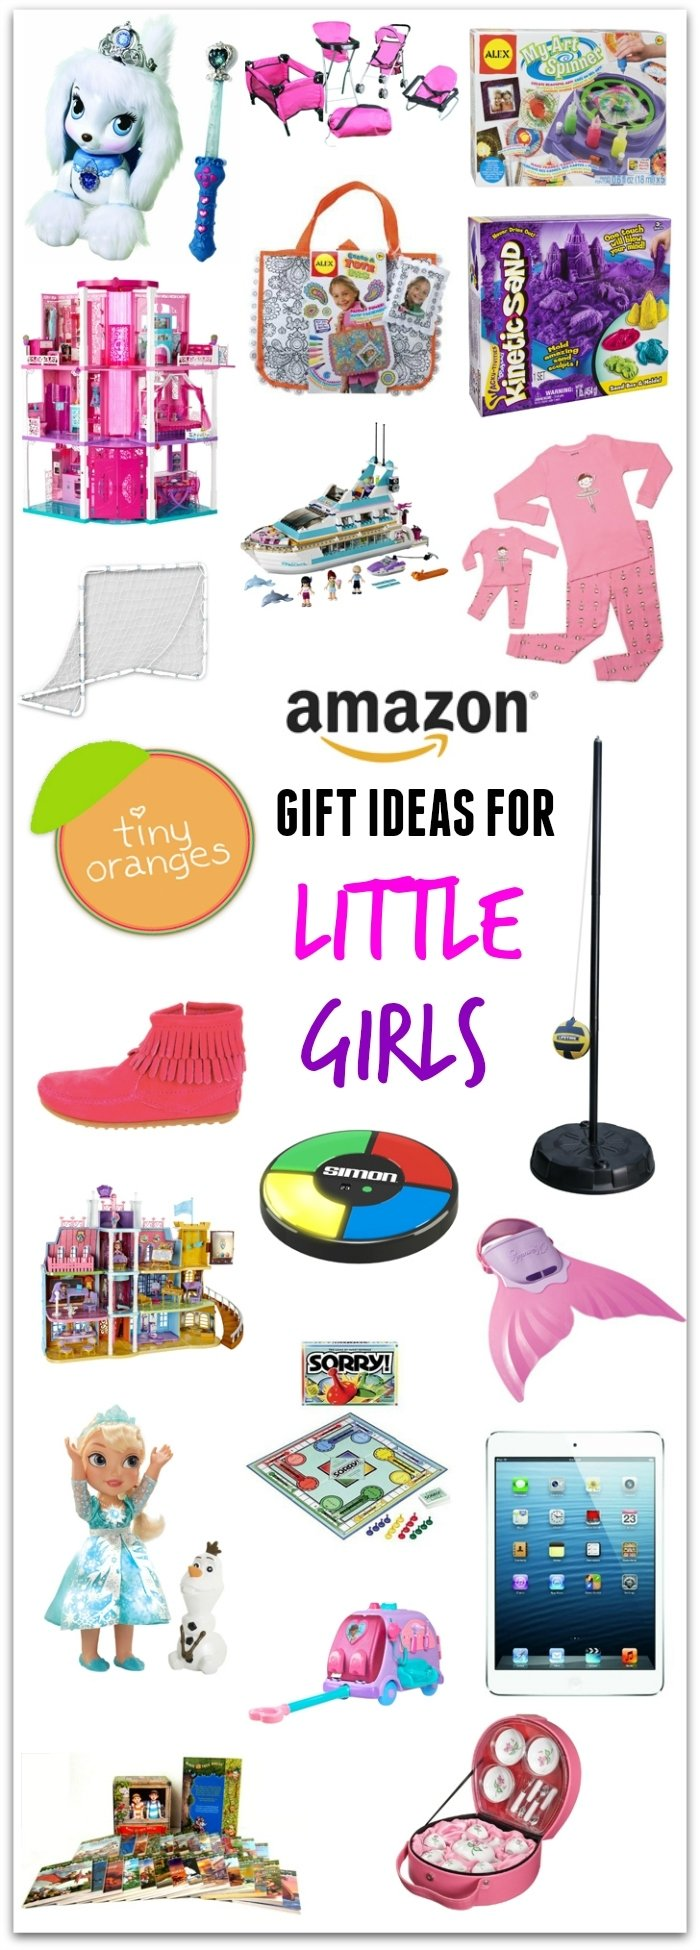 10 Stunning Gift Ideas For Little Girls holiday gift ideas for little girls 1 2021